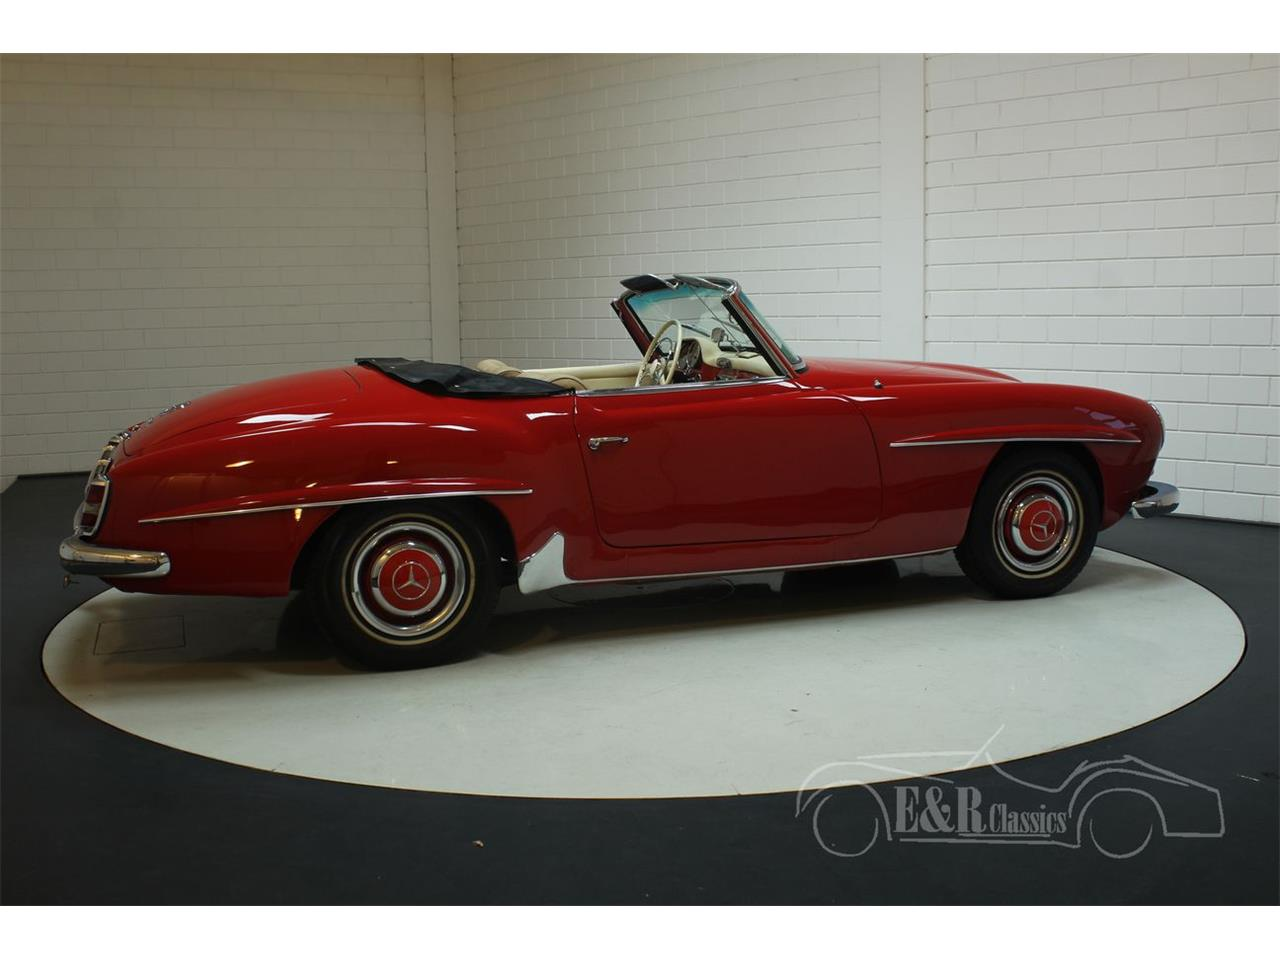 Large Picture of Classic 1956 190SL located in - Keine Angabe - - $118,450.00 Offered by E & R Classics - PH44